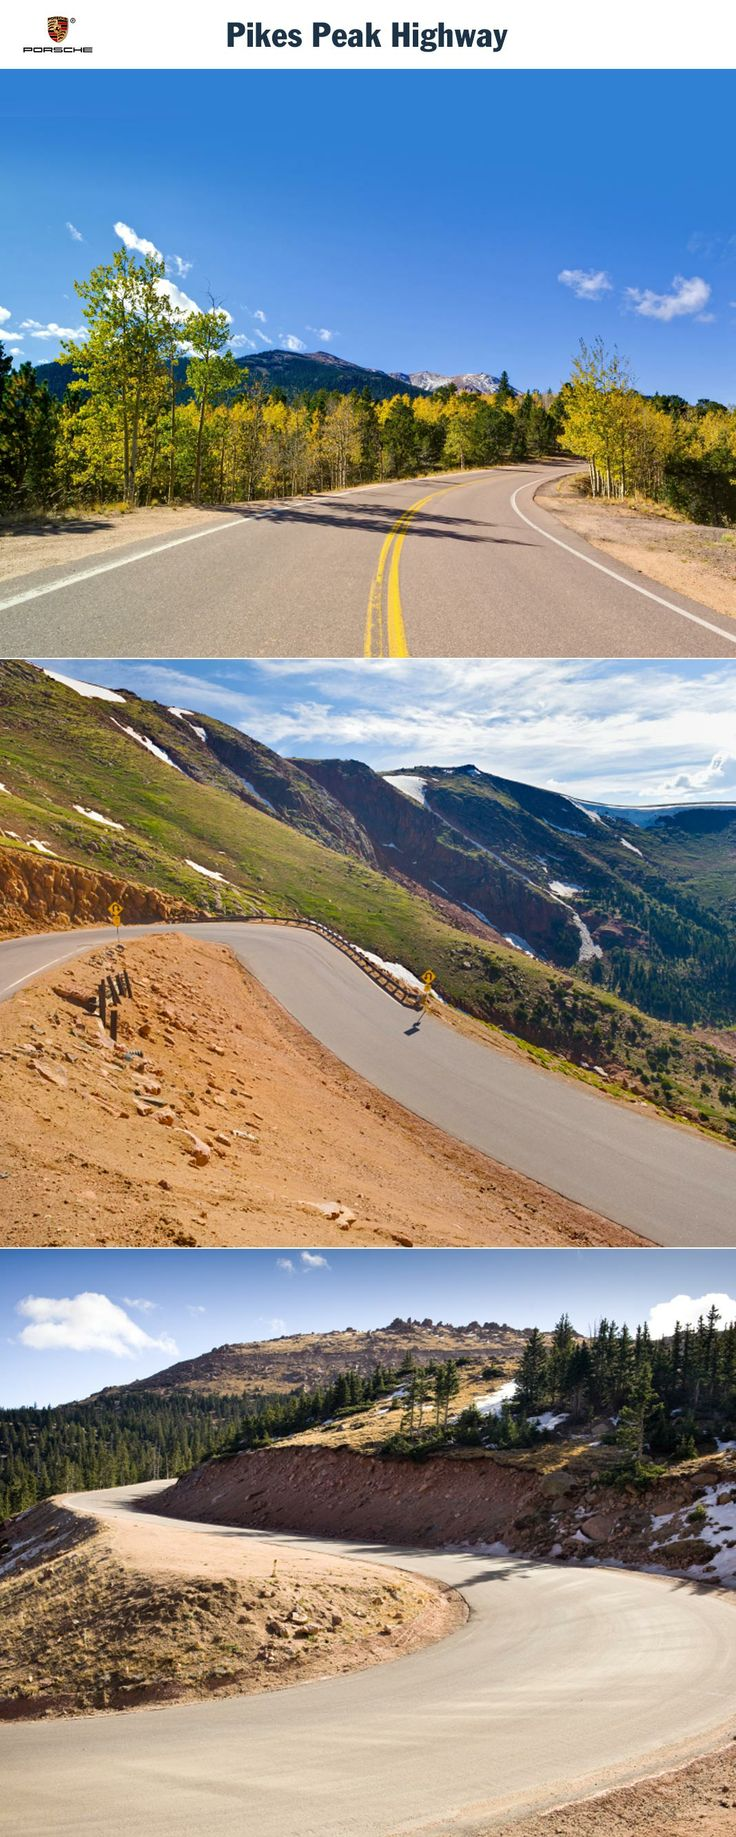 Pikes Peak Highway, USA. 156 bends. Full stop. Start: Cascade. Destination: Pikes Peak Summit. Driving time: Approx. 1 hour. Distance: Approx. 31 km (19 miles). Recommended travel time: April - November.   Learn more: http://link.porsche.com/gts/usa3